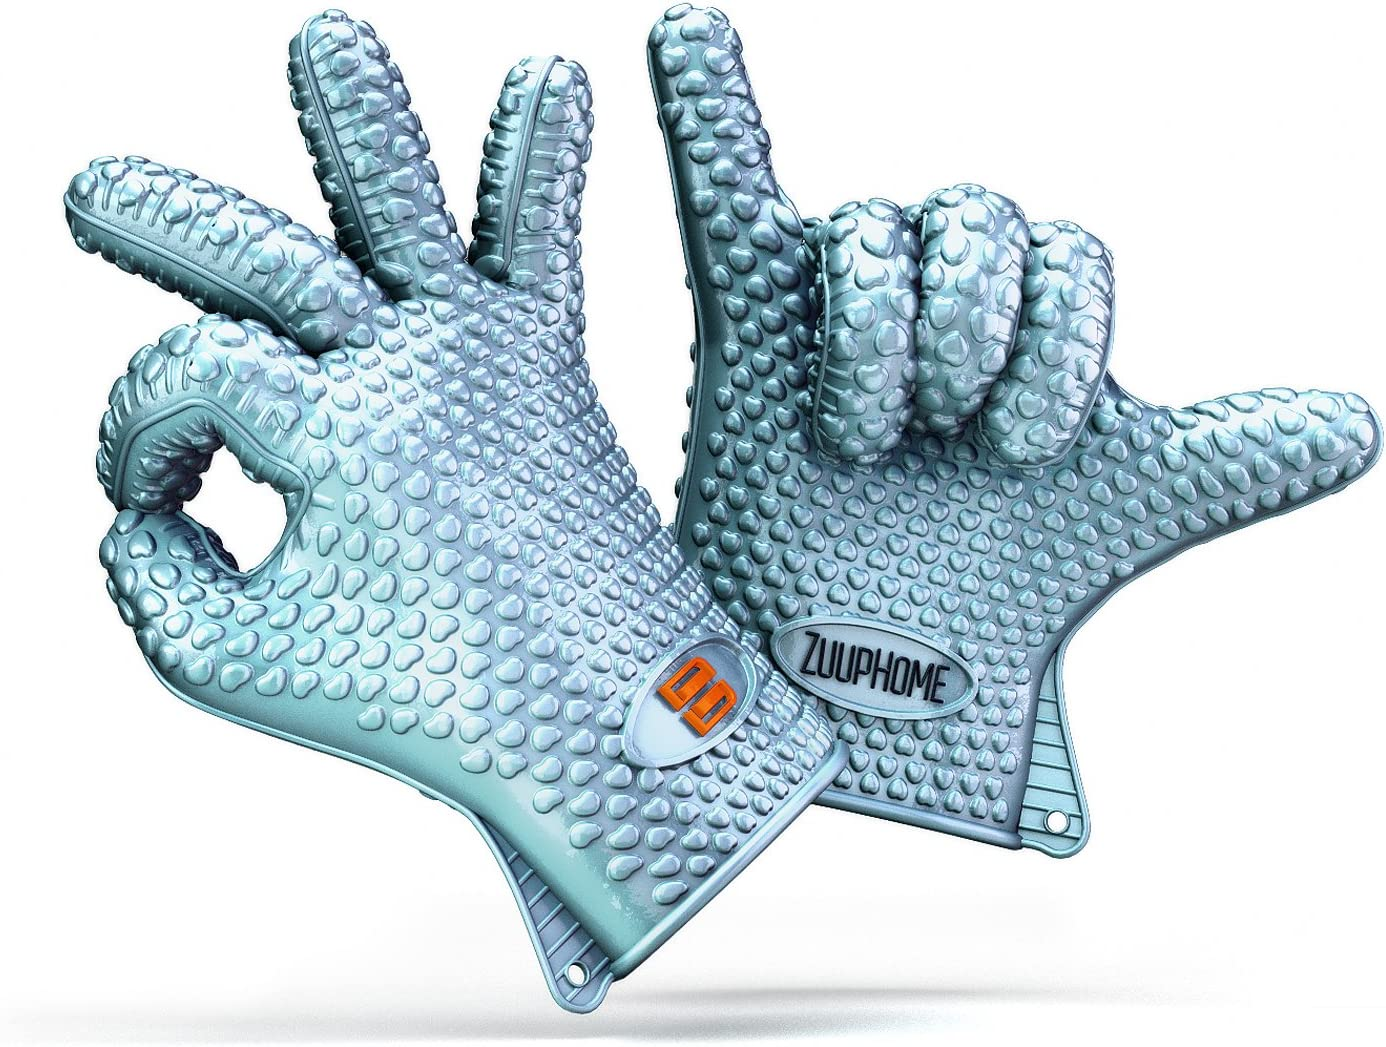 Grill Mitt Silicone Gloves For Heat Resistant Cooking Glove And BBQ Meat Gloves For In The Oven ZuupDesign